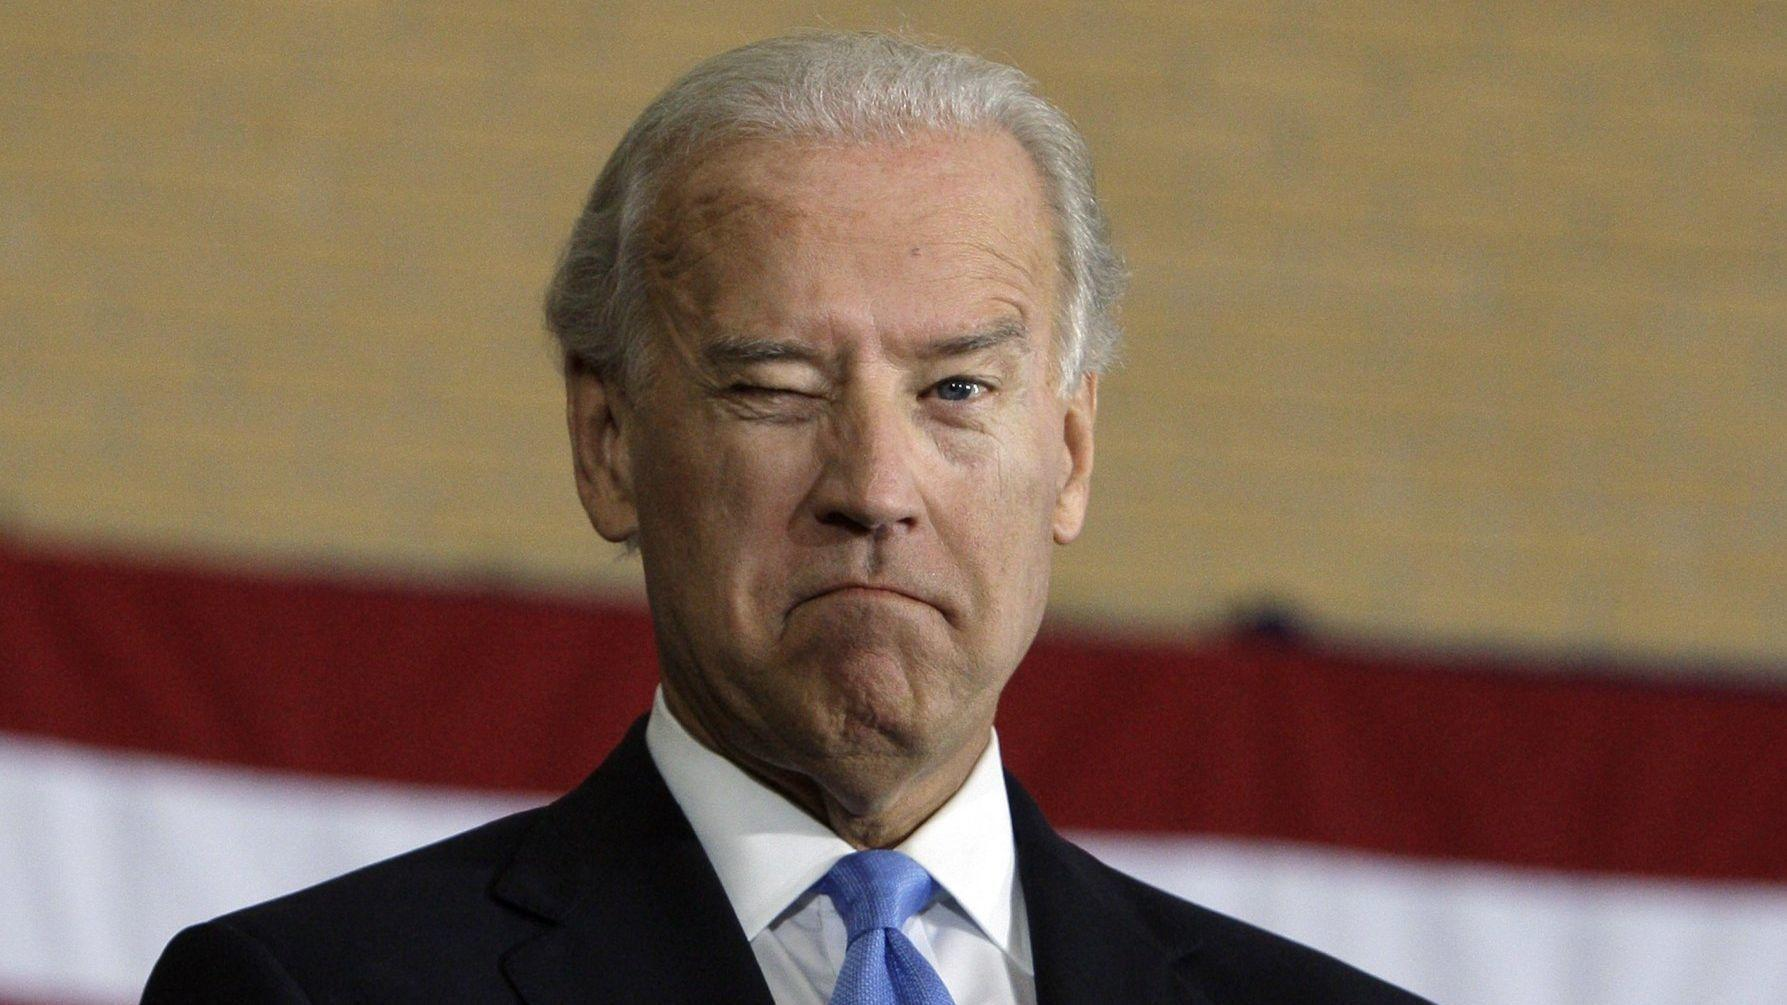 The mythologies of 'Joe being Joe' Biden - Chicago Tribune